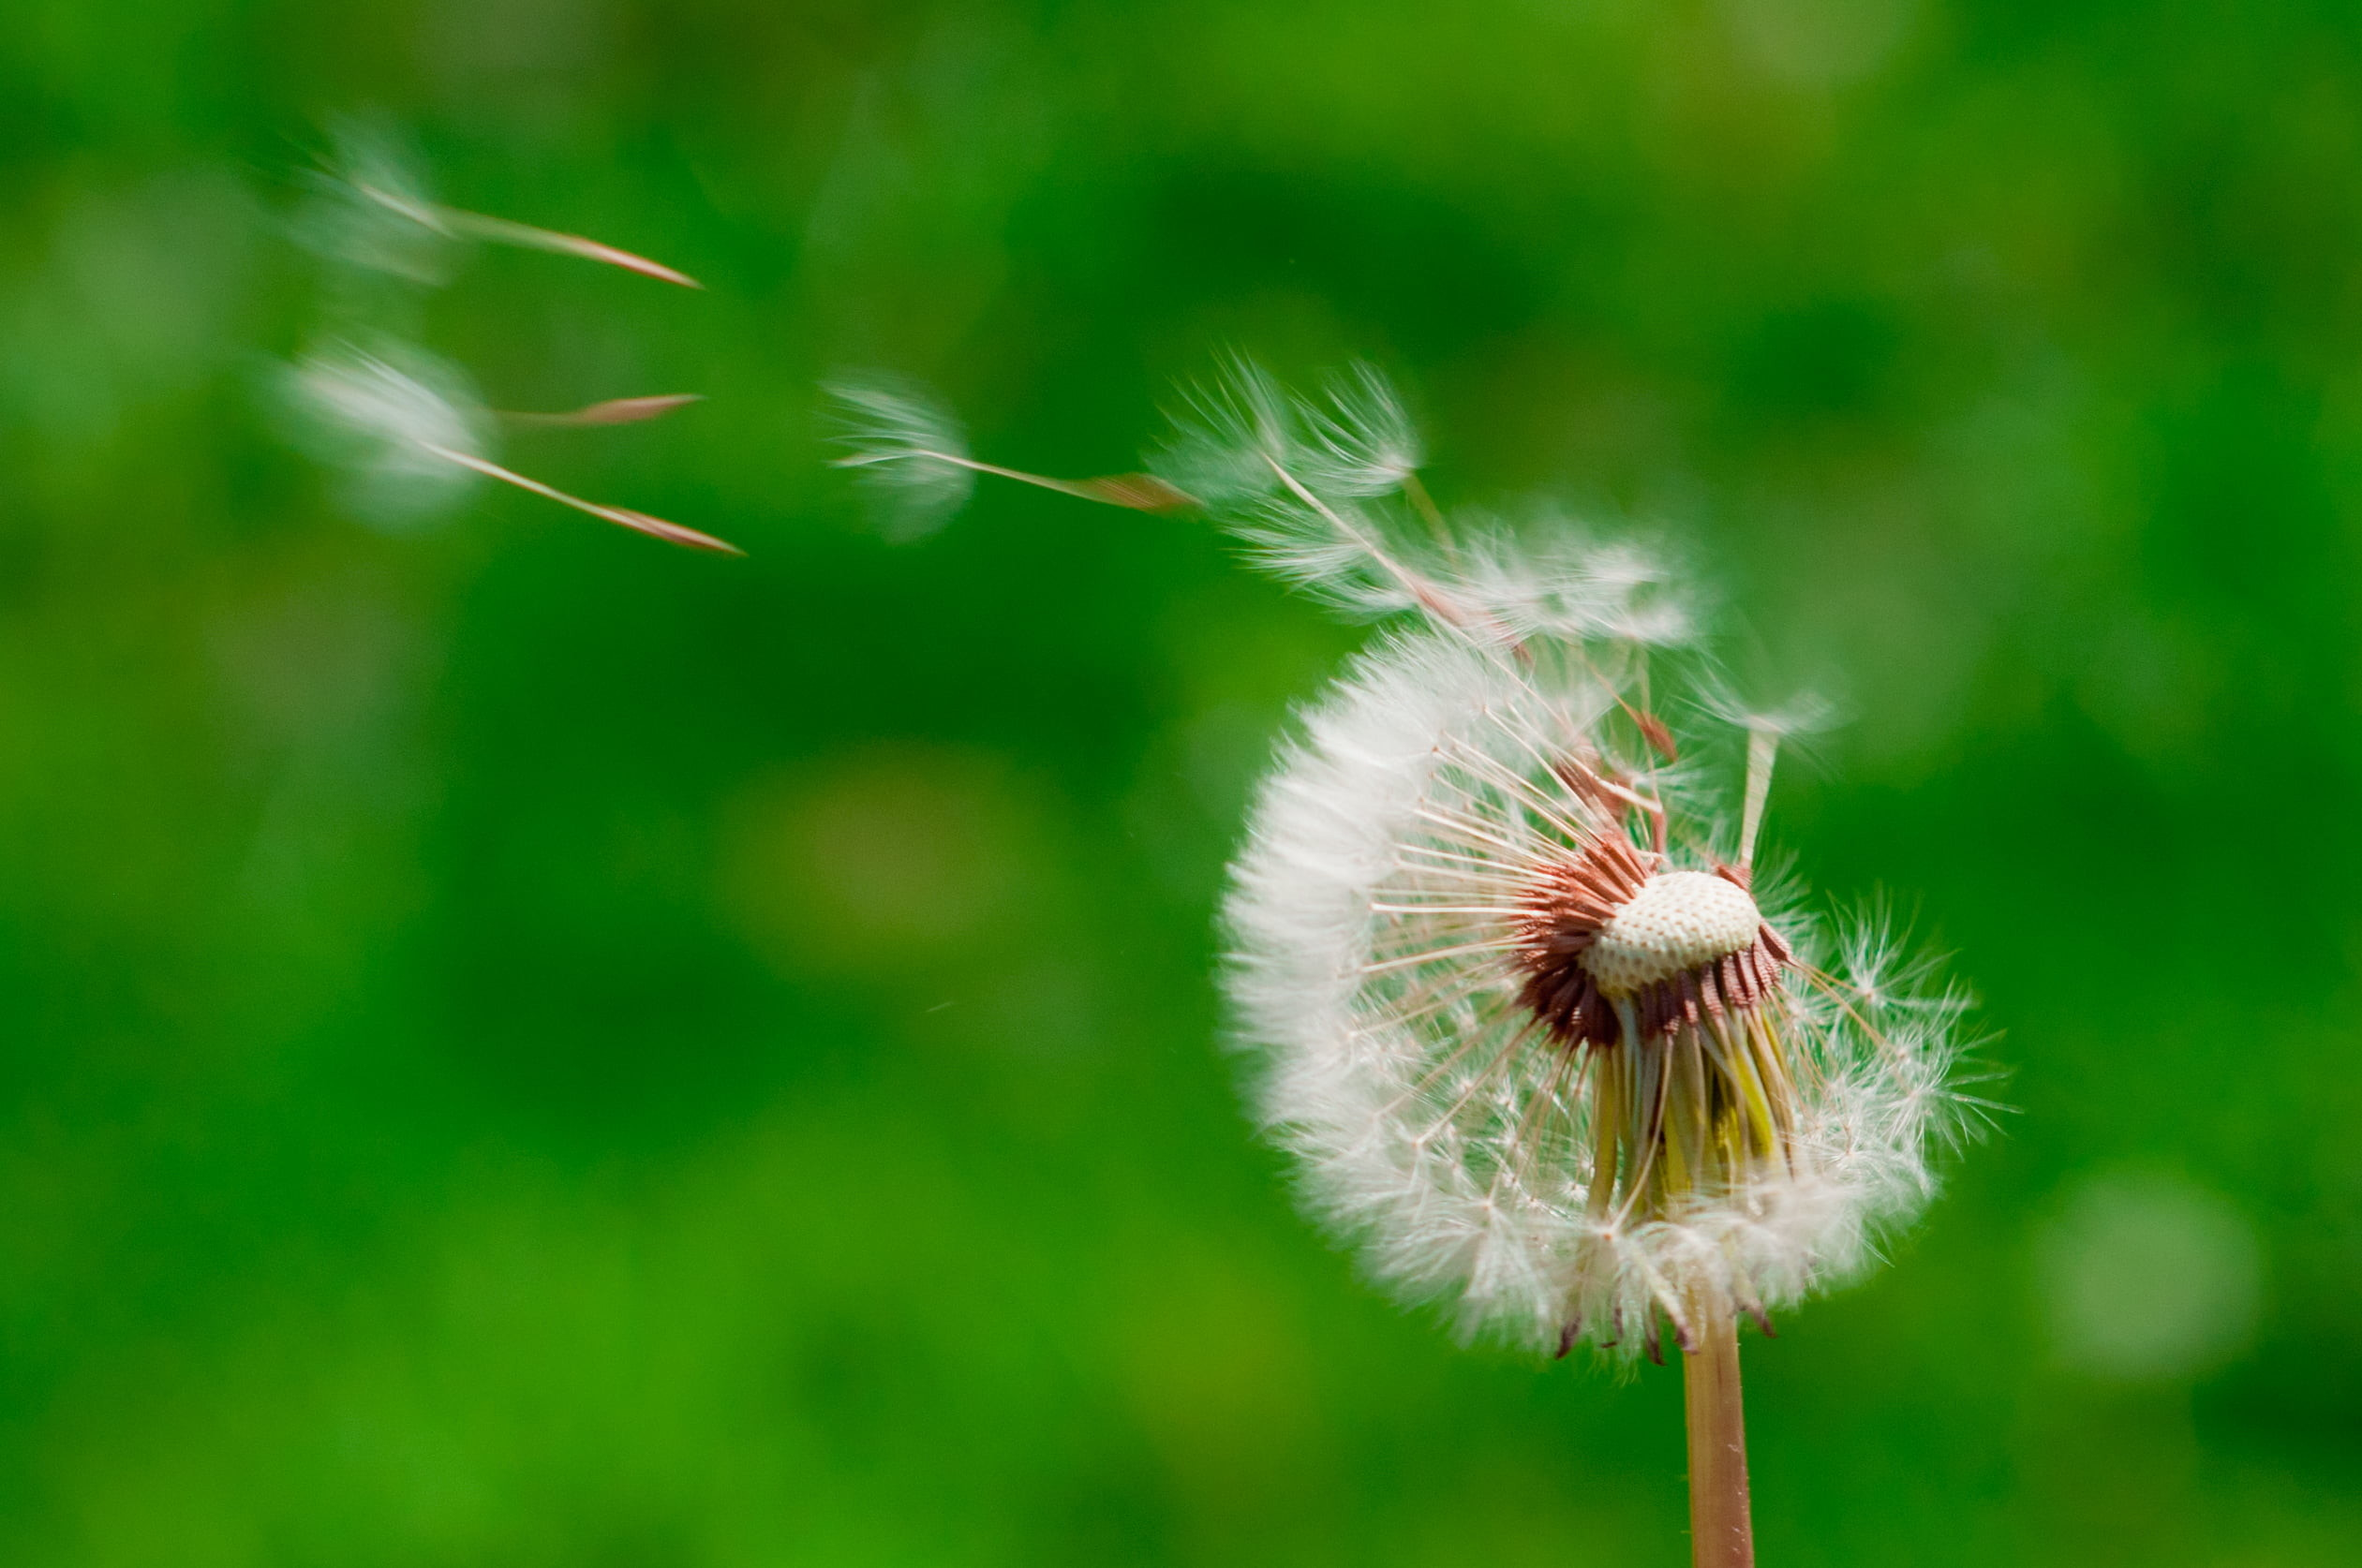 Res: 2521x1674, wind blowing dandelion buds in selective focus photography HD wallpaper